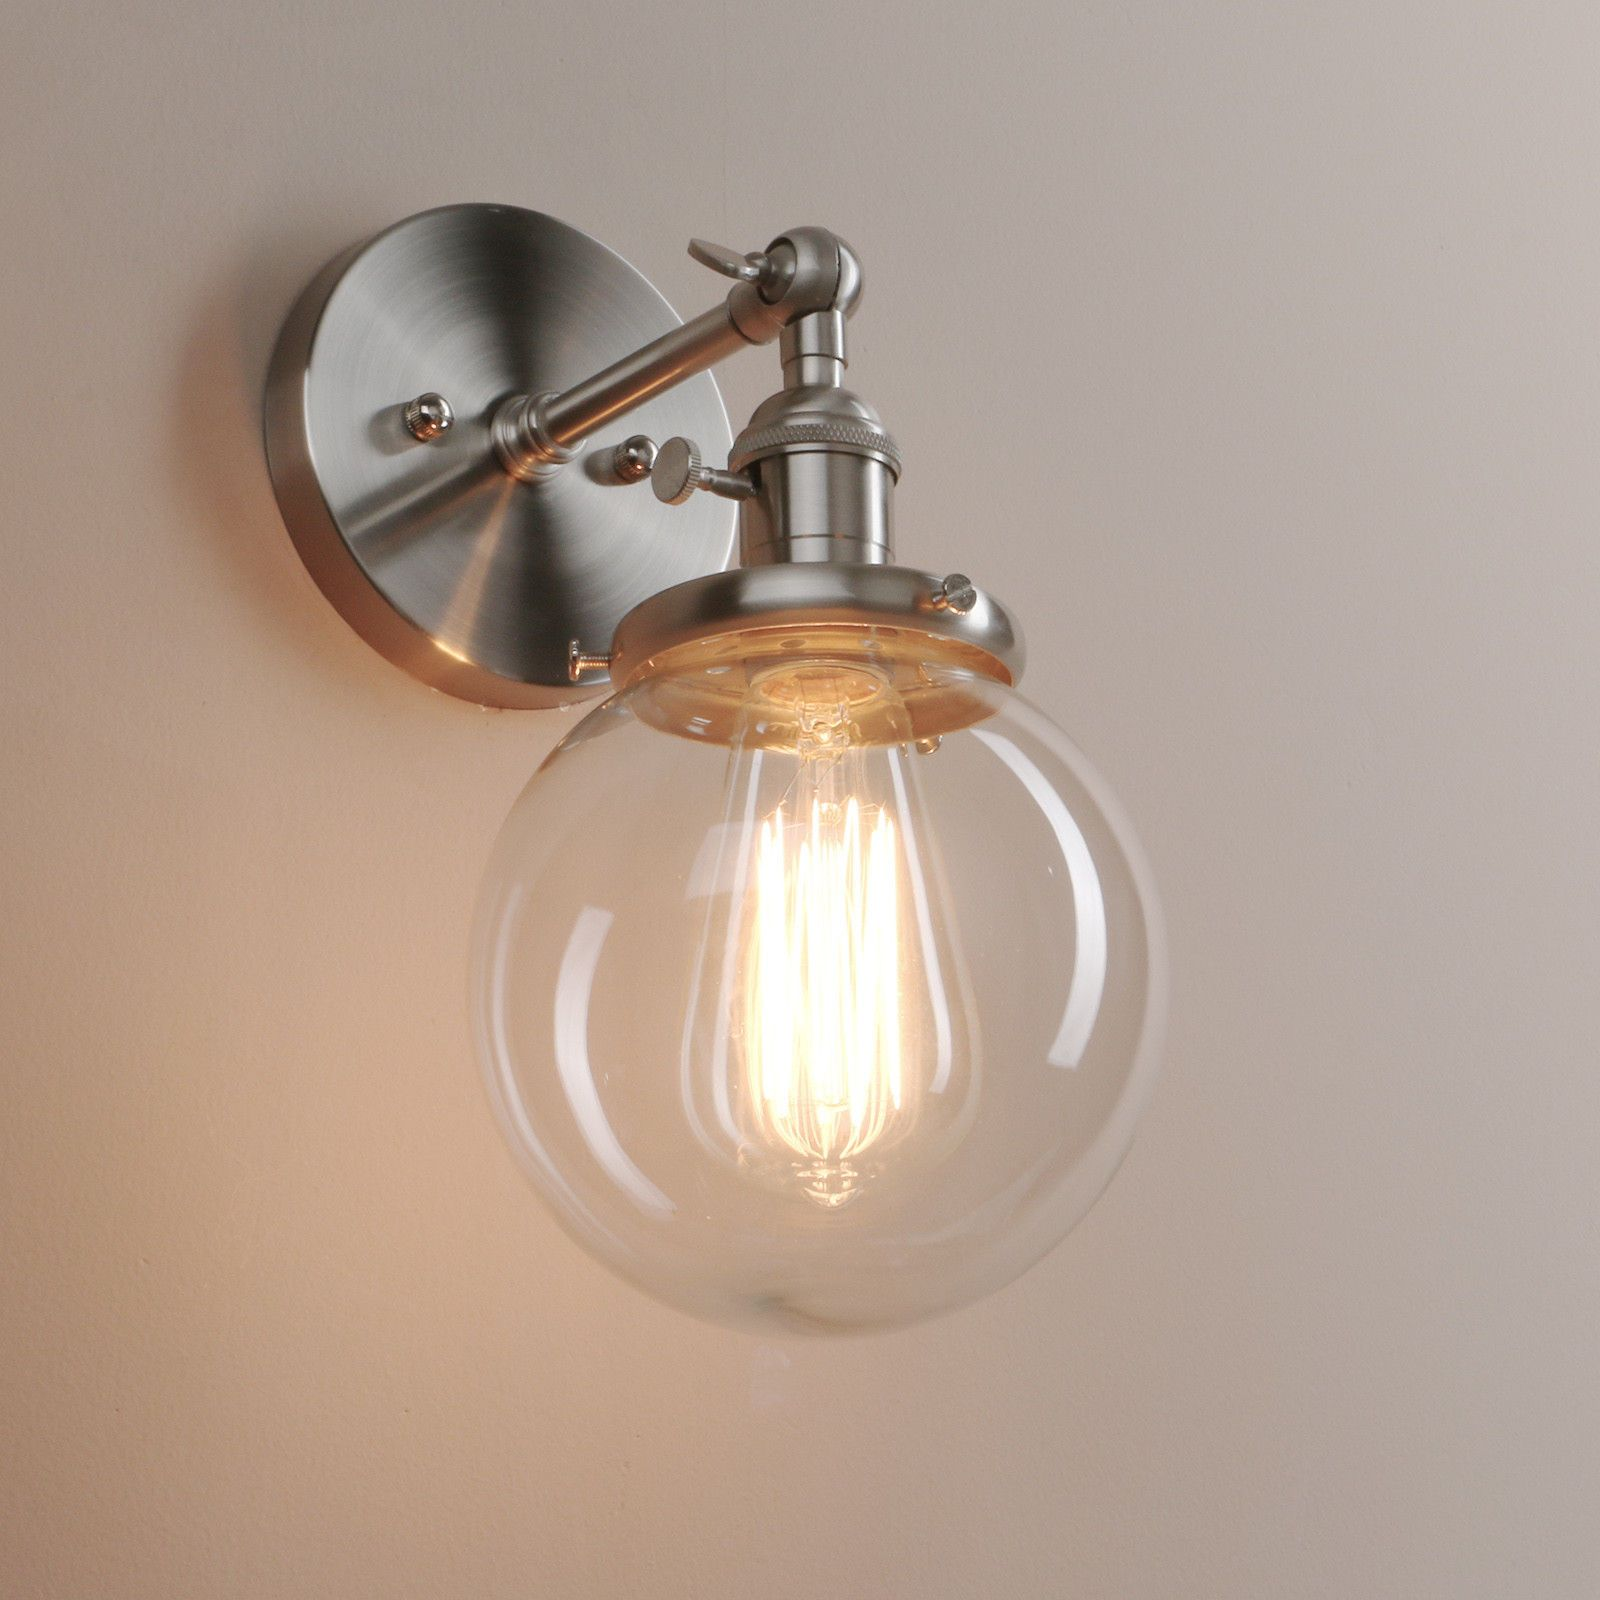 industrial look lighting. Designed To Showcase The Warmth Of Edison-style Bulbs. It Has A Clean Industrial Look That Is Super Cool, Sphere Glass Beautiful And Light Lighting E